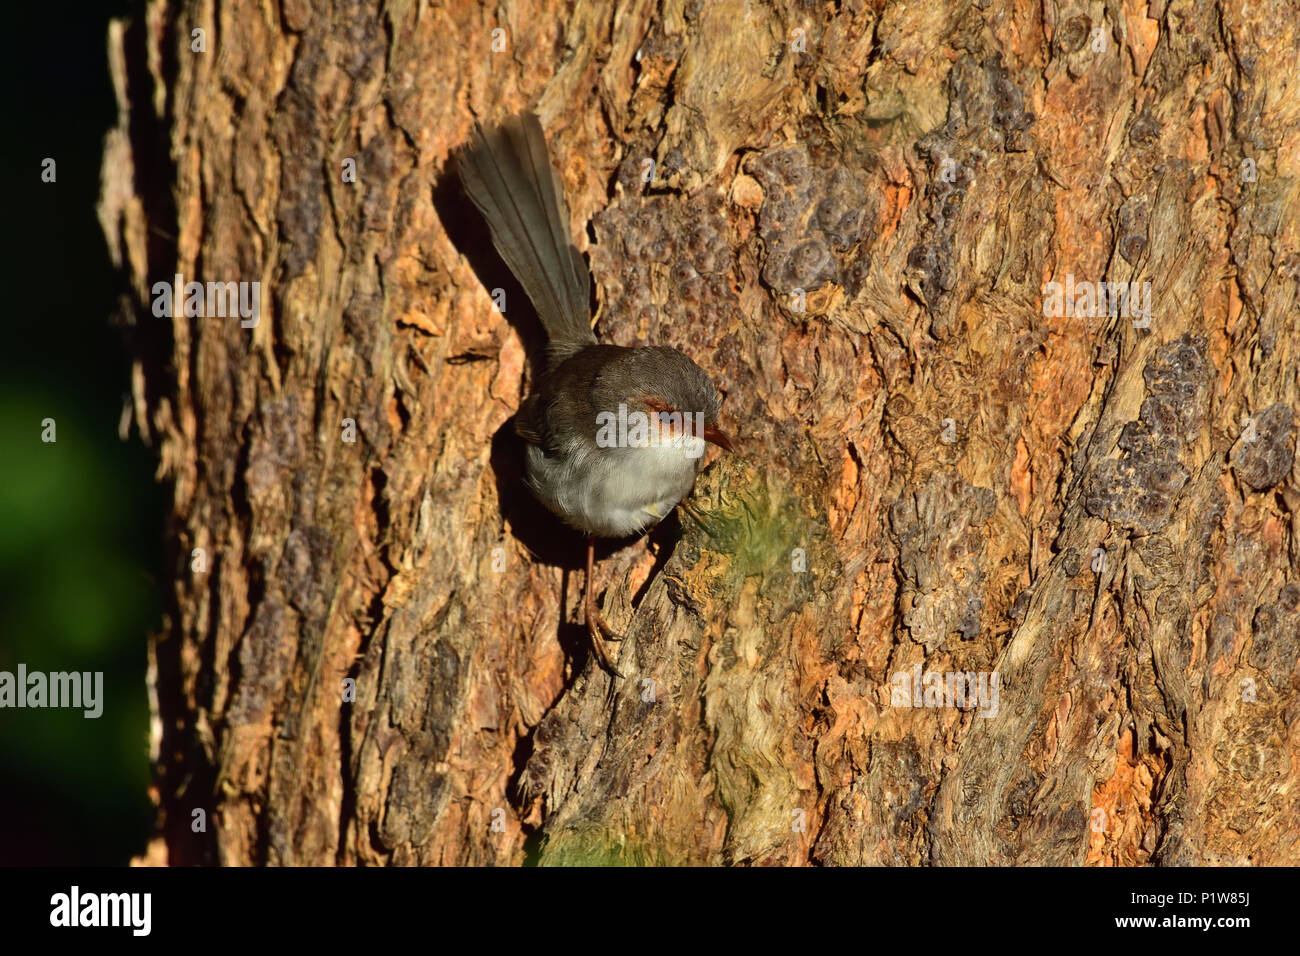 An Australian, Brisbane Queensland Female Superb Fairy-wren, Malurus cyaneus perched on a Tree trunk looking for food - Stock Image